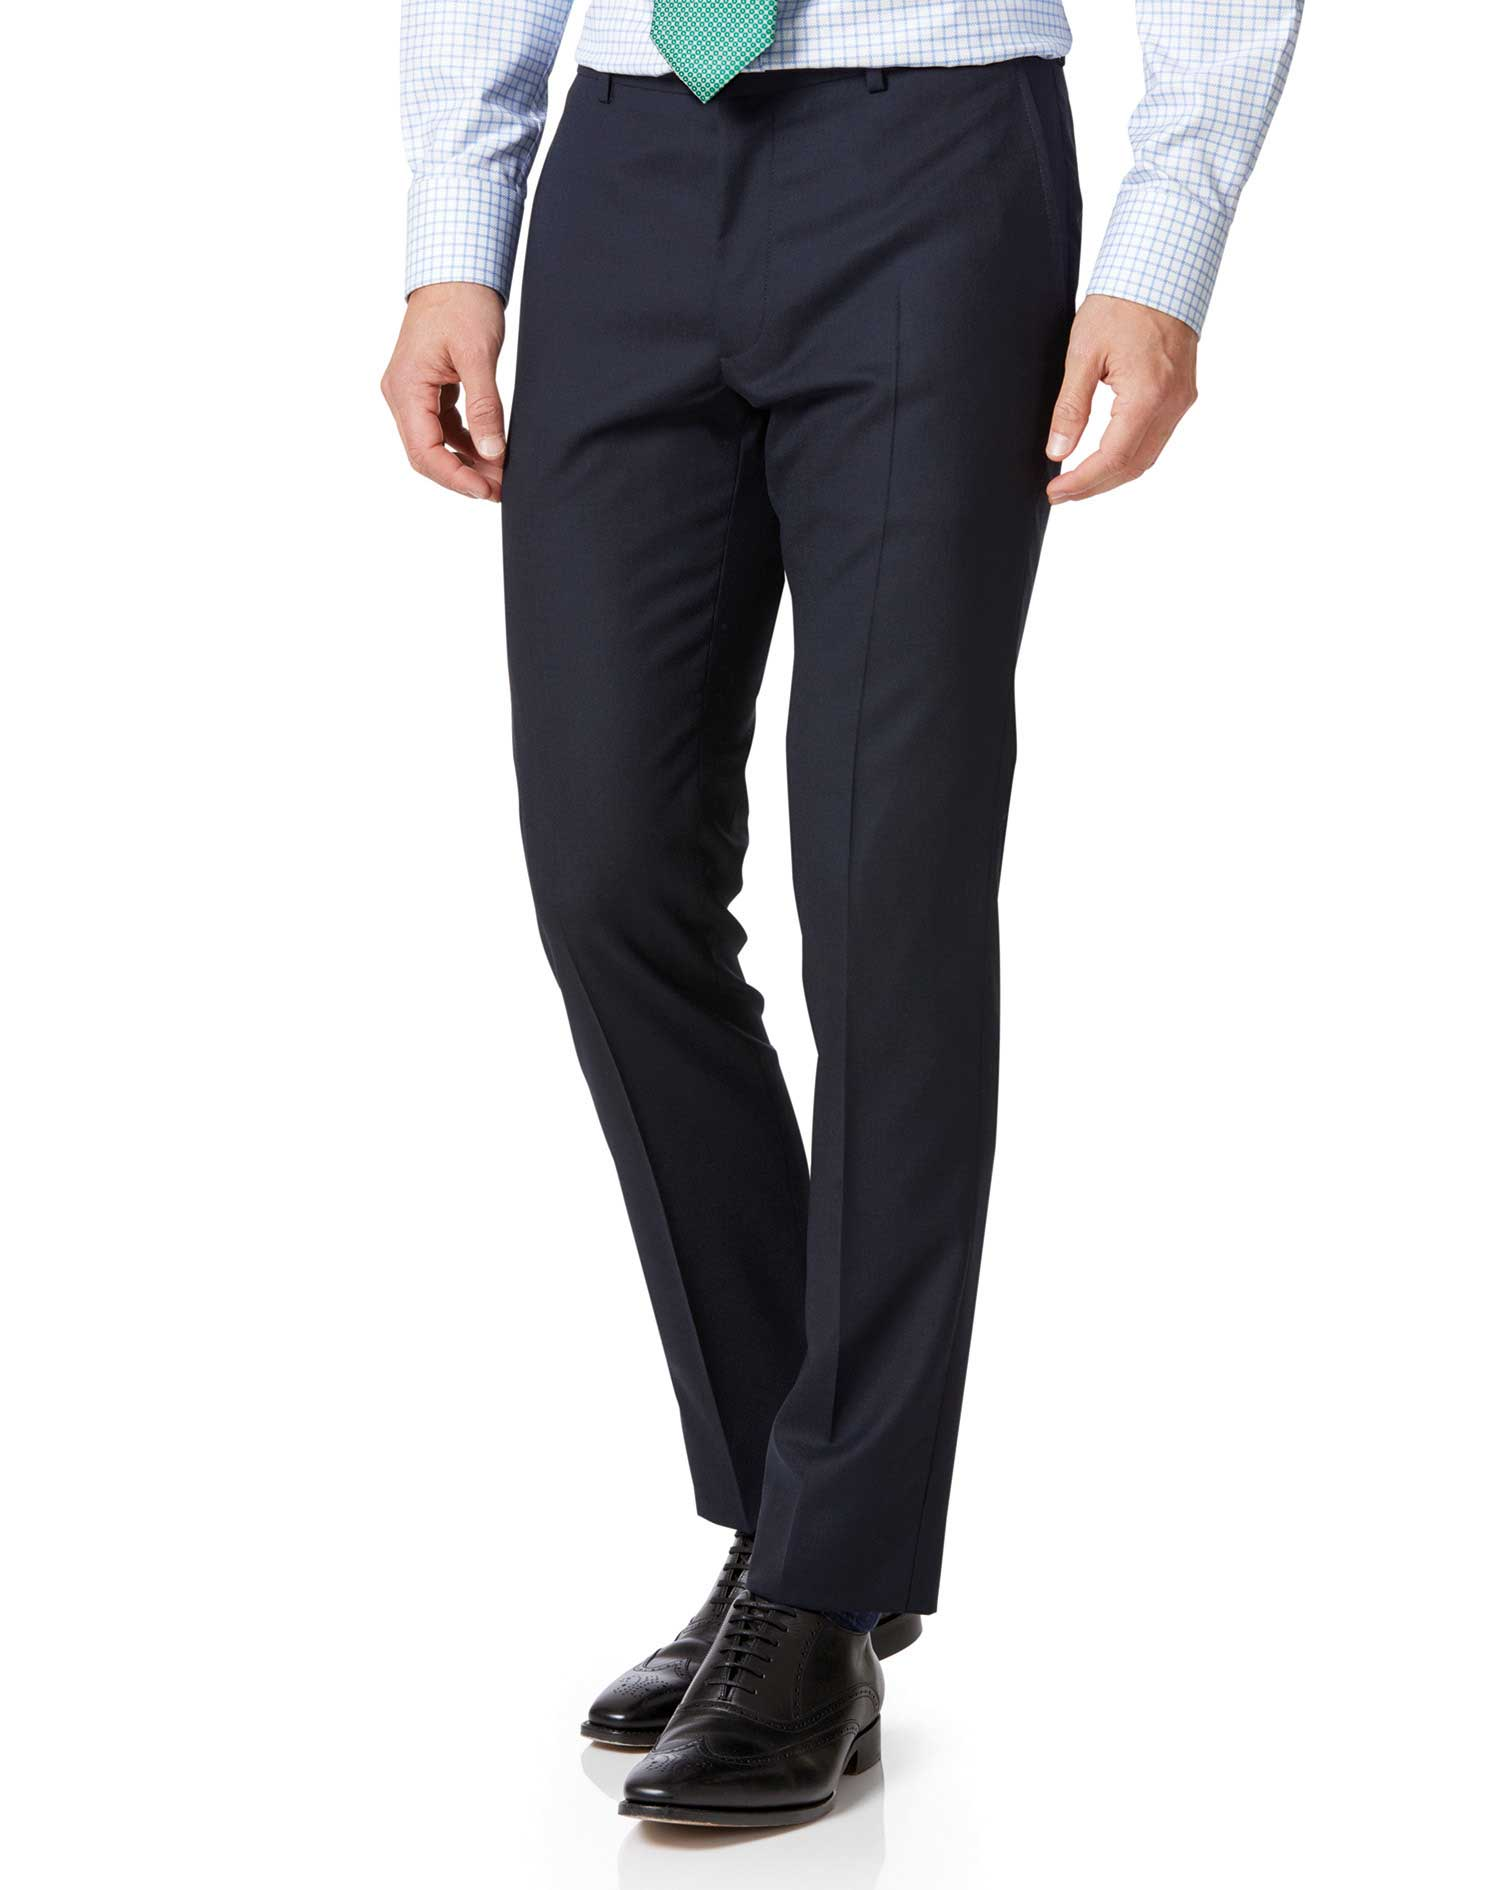 Midnight Blue Extra Slim Fit Merino Business Suit Trousers Size W36 L38 by Charles Tyrwhitt